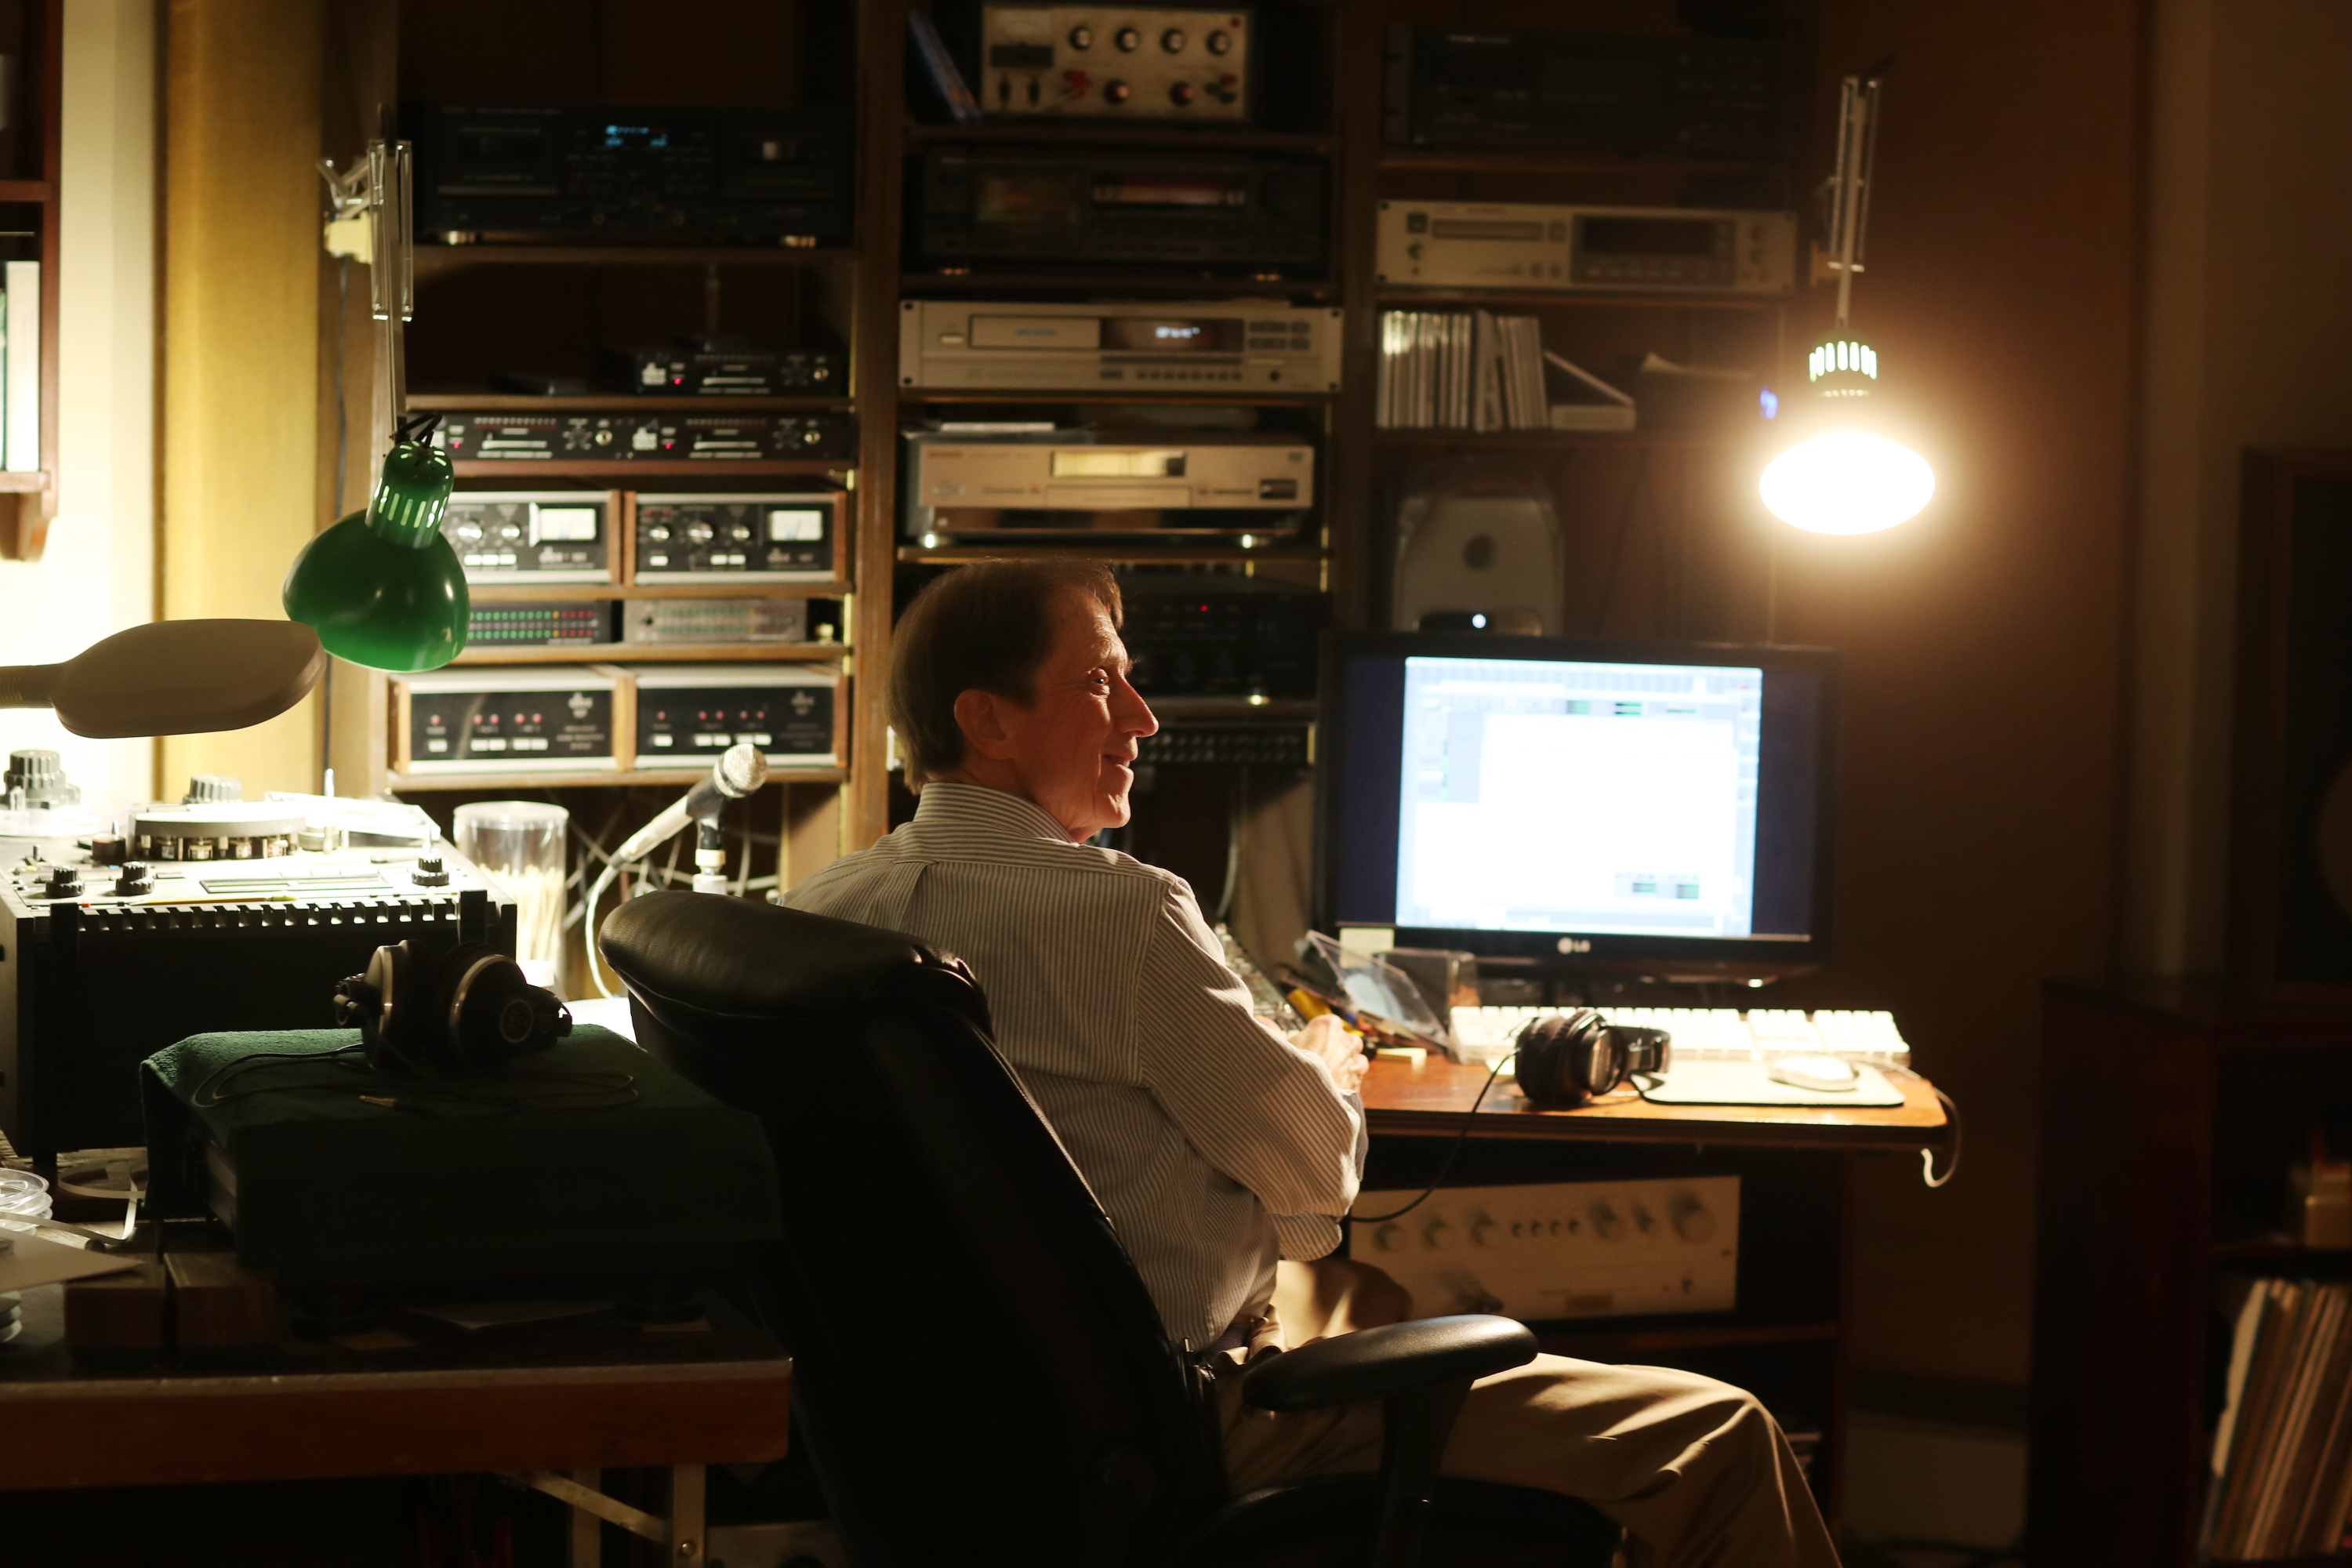 Emmet Robinson, 78, has been running King Studio Records in Malvern for 50 years,